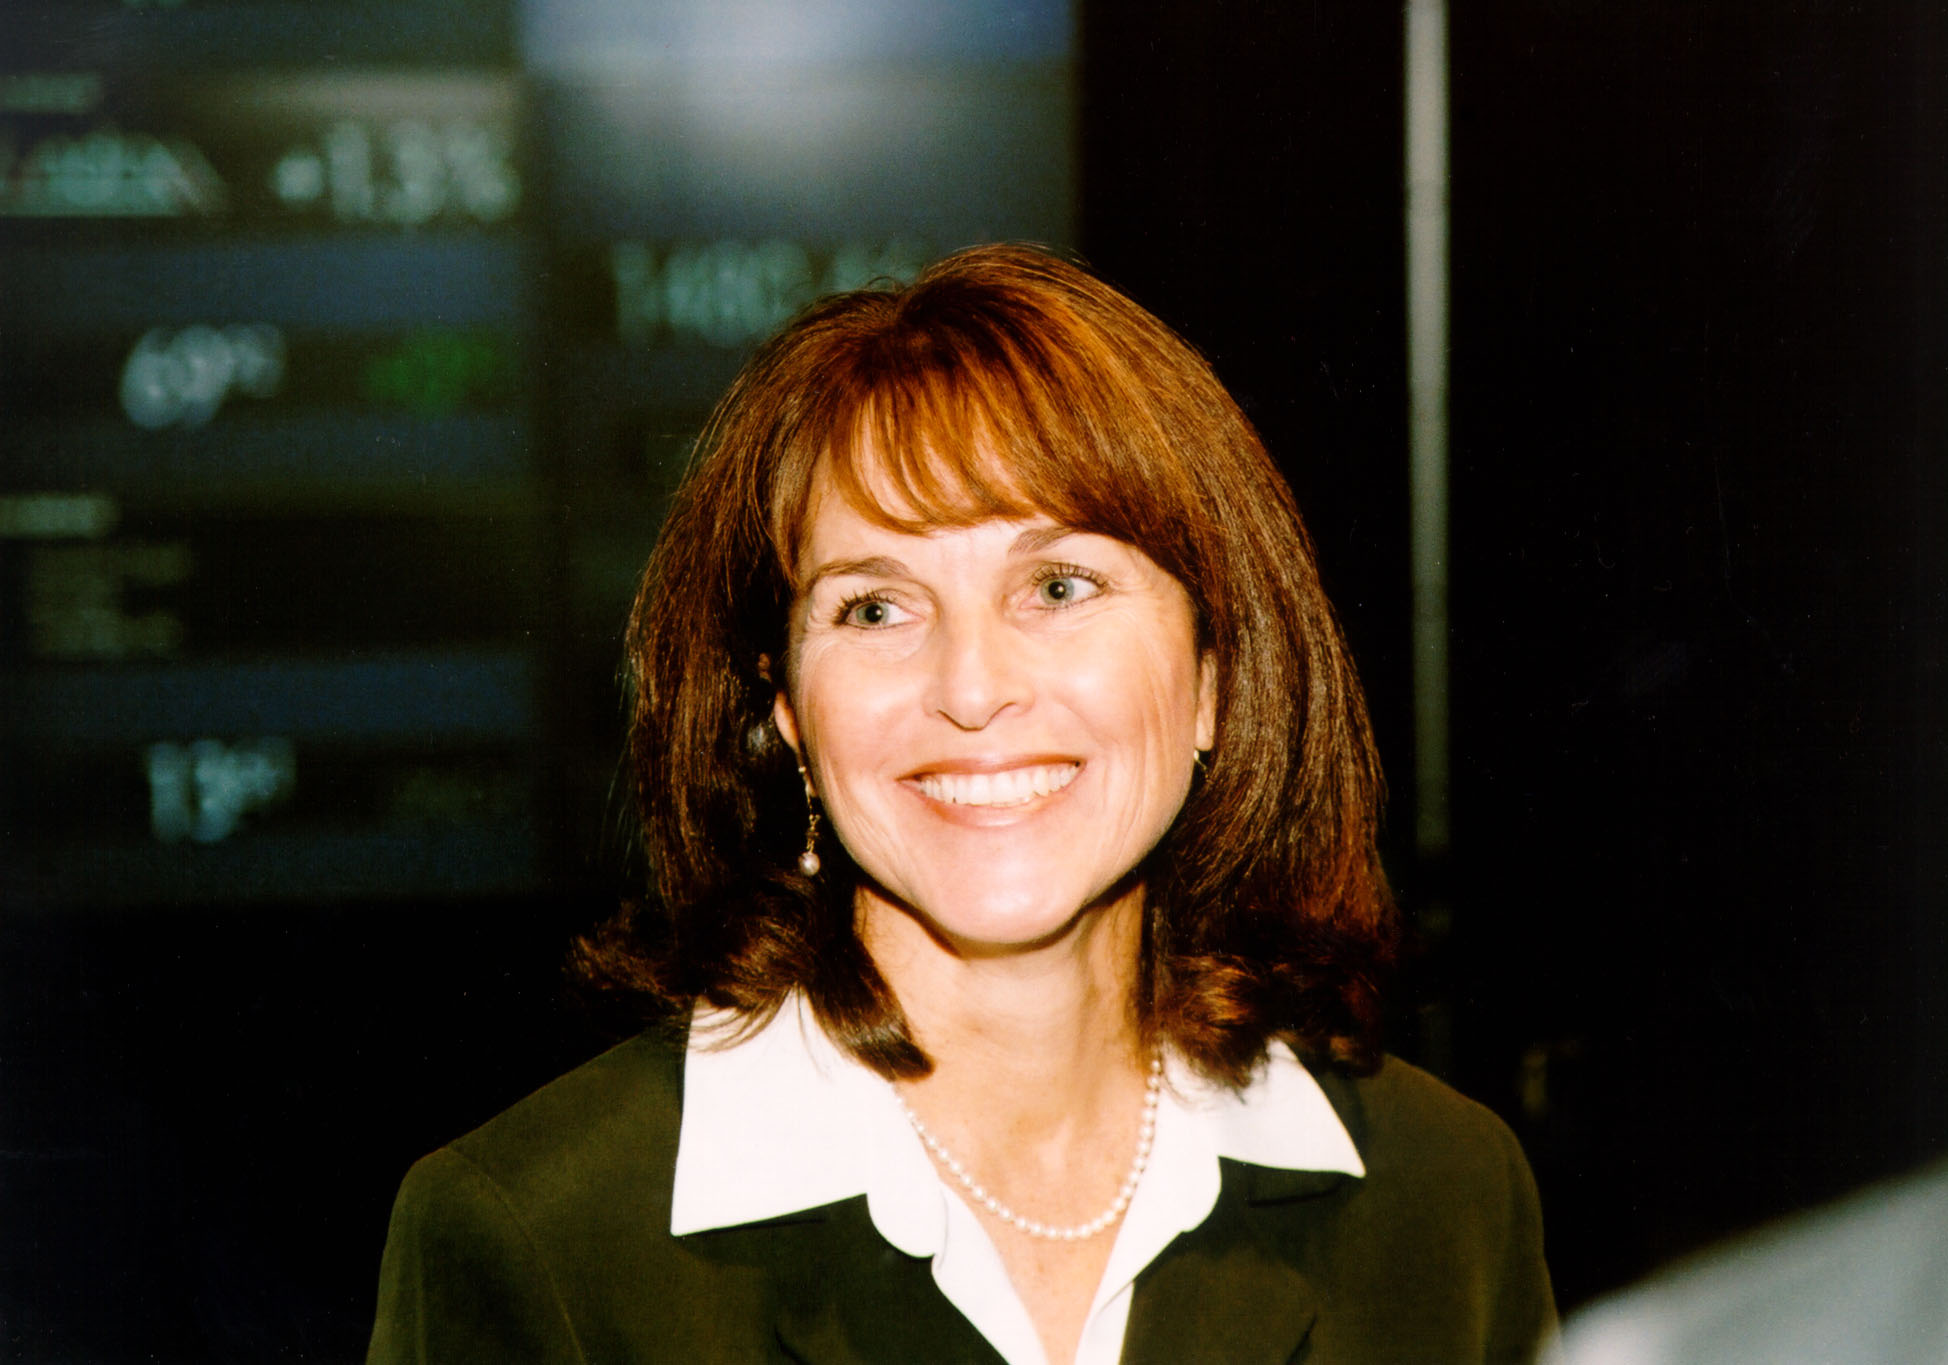 Cathy Baron Tamraz, chairwoman and CEO of Business Wire